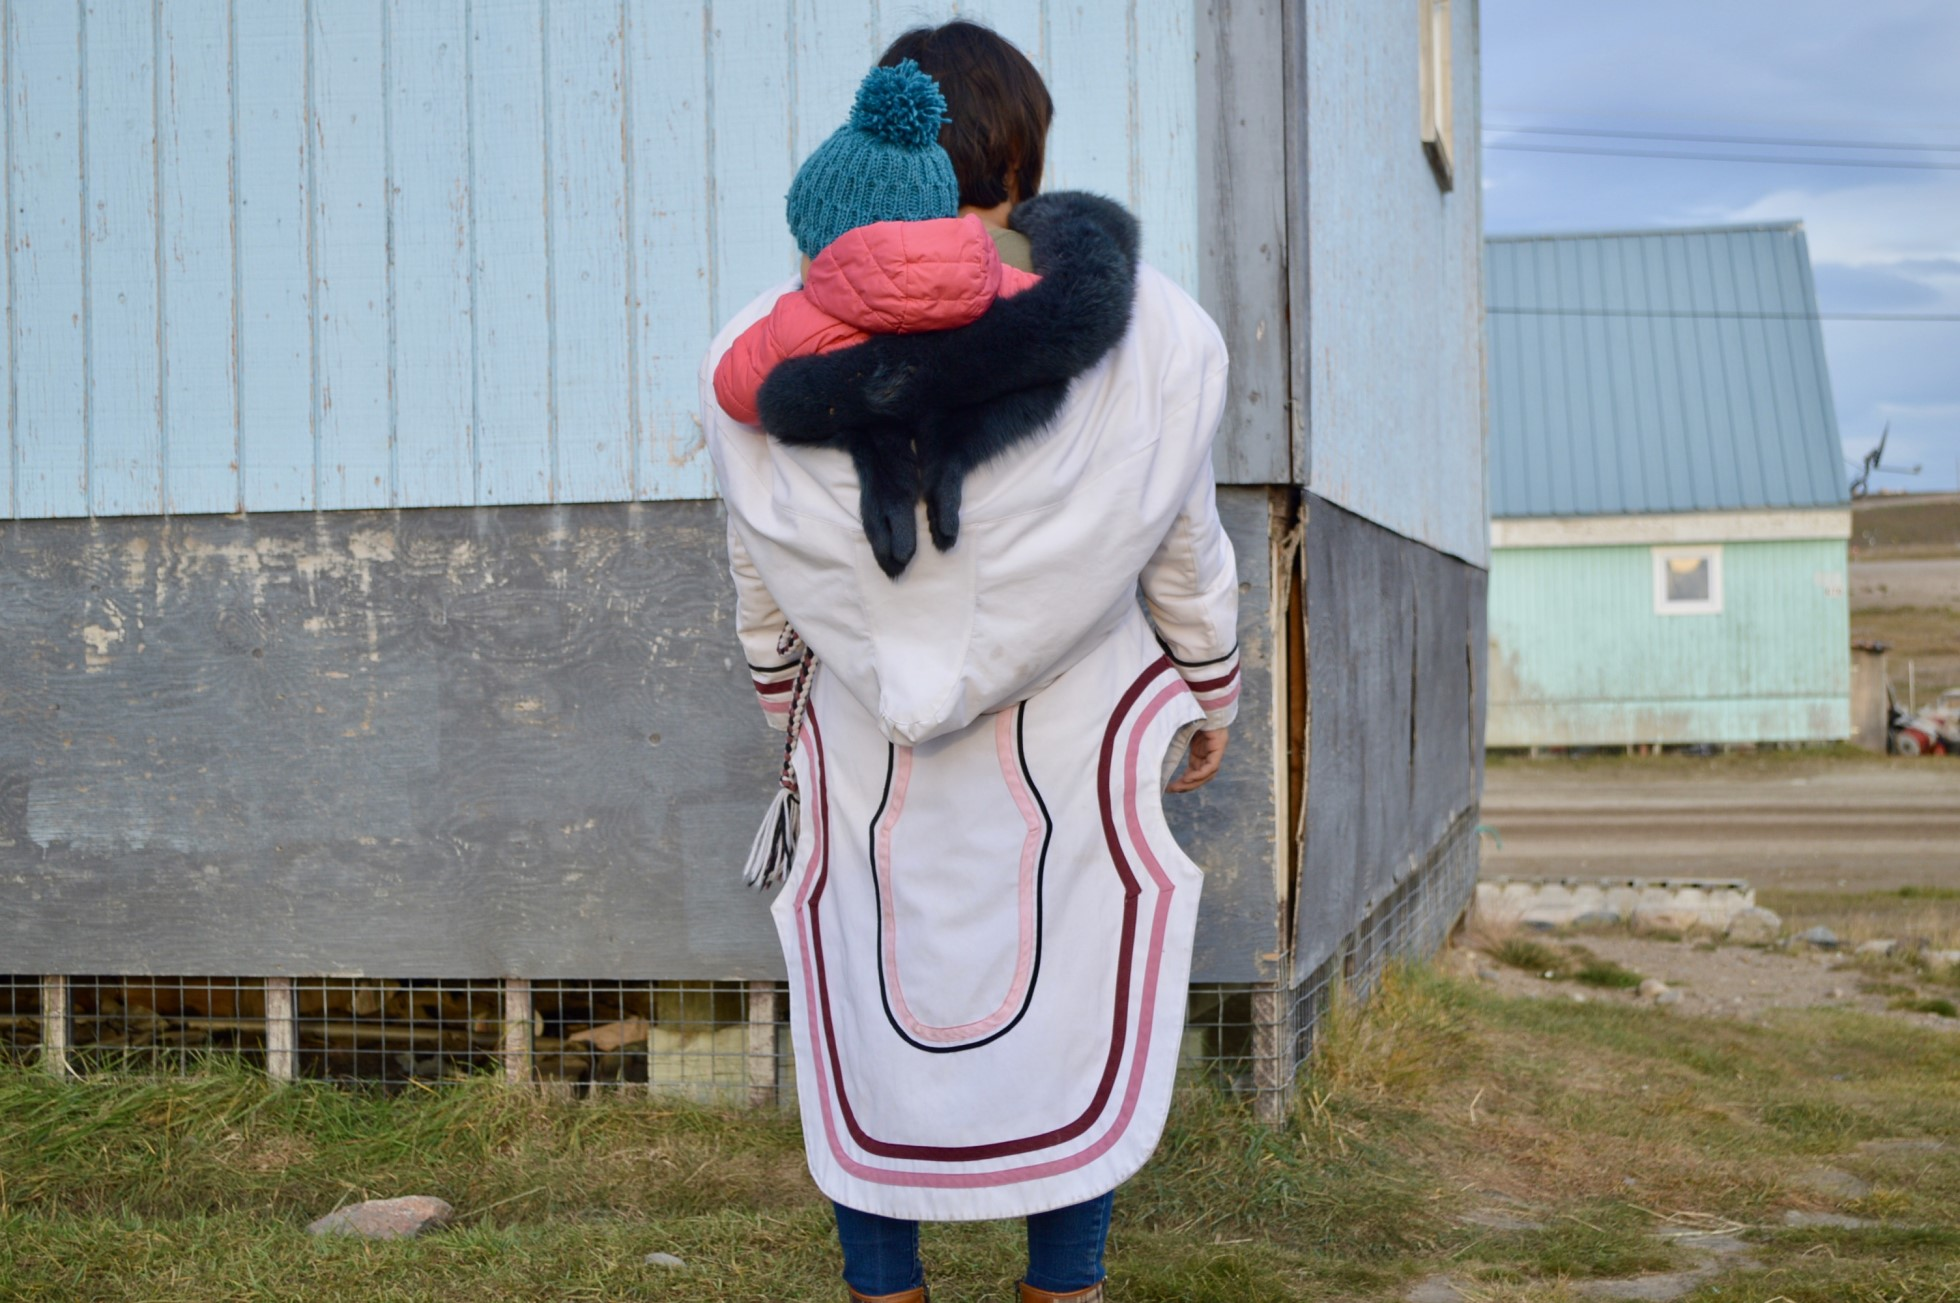 A photo of Sheila Katsak. She is photographed from behind, demonstrating how to wear the amautis parka. The child is shown in the pocket on the back. The back of the amautis drops down to the back of the calf. The amautis is white with purple and pink trimming.